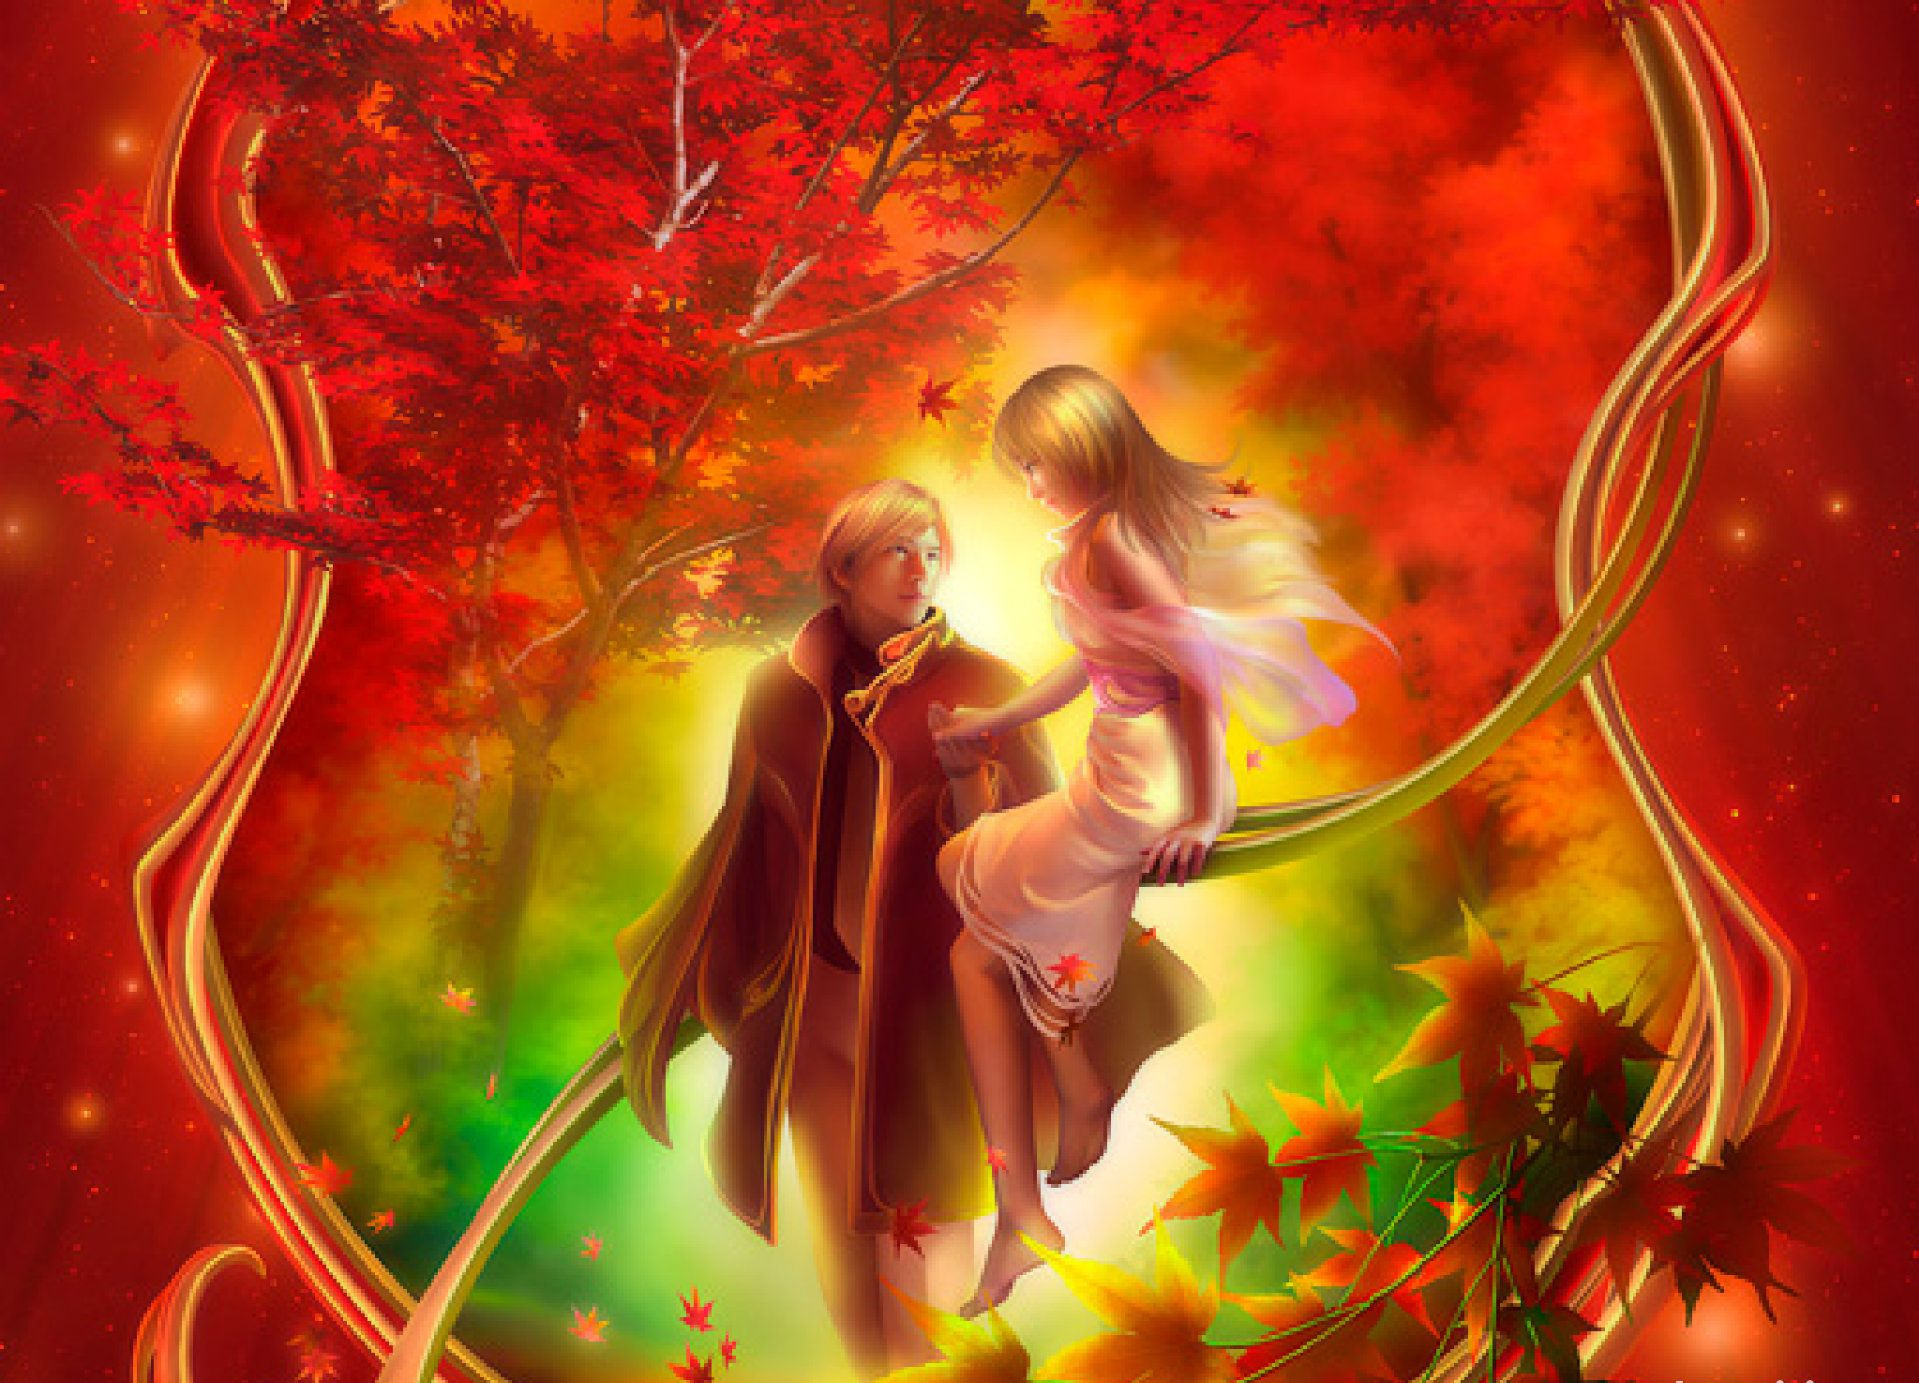 Fantasy - Love  - Fairytale Love Wallpaper